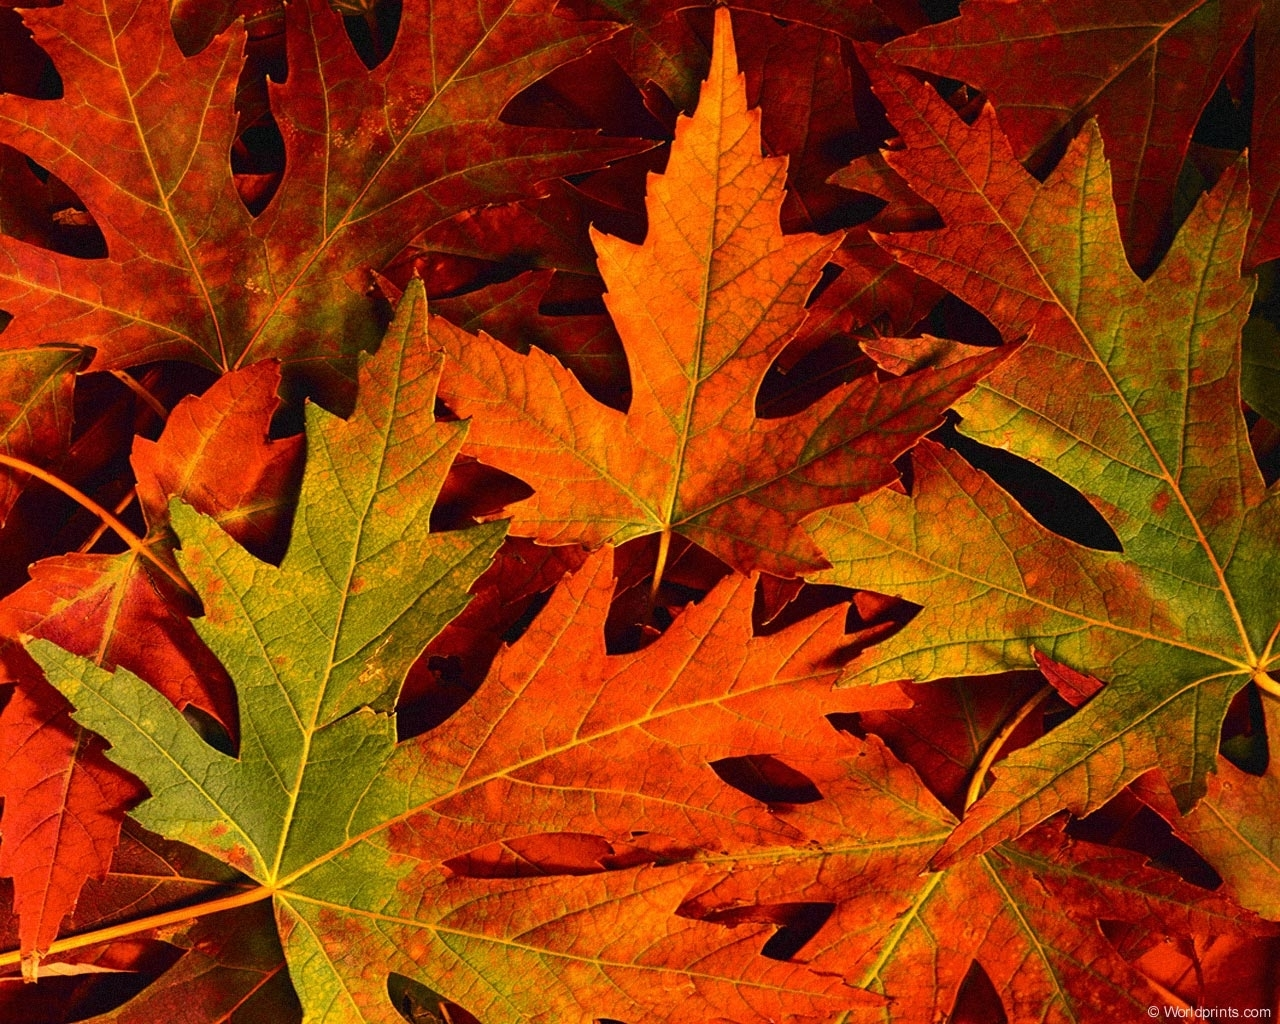 13717 download wallpaper Plants, Background, Autumn, Leaves screensavers and pictures for free